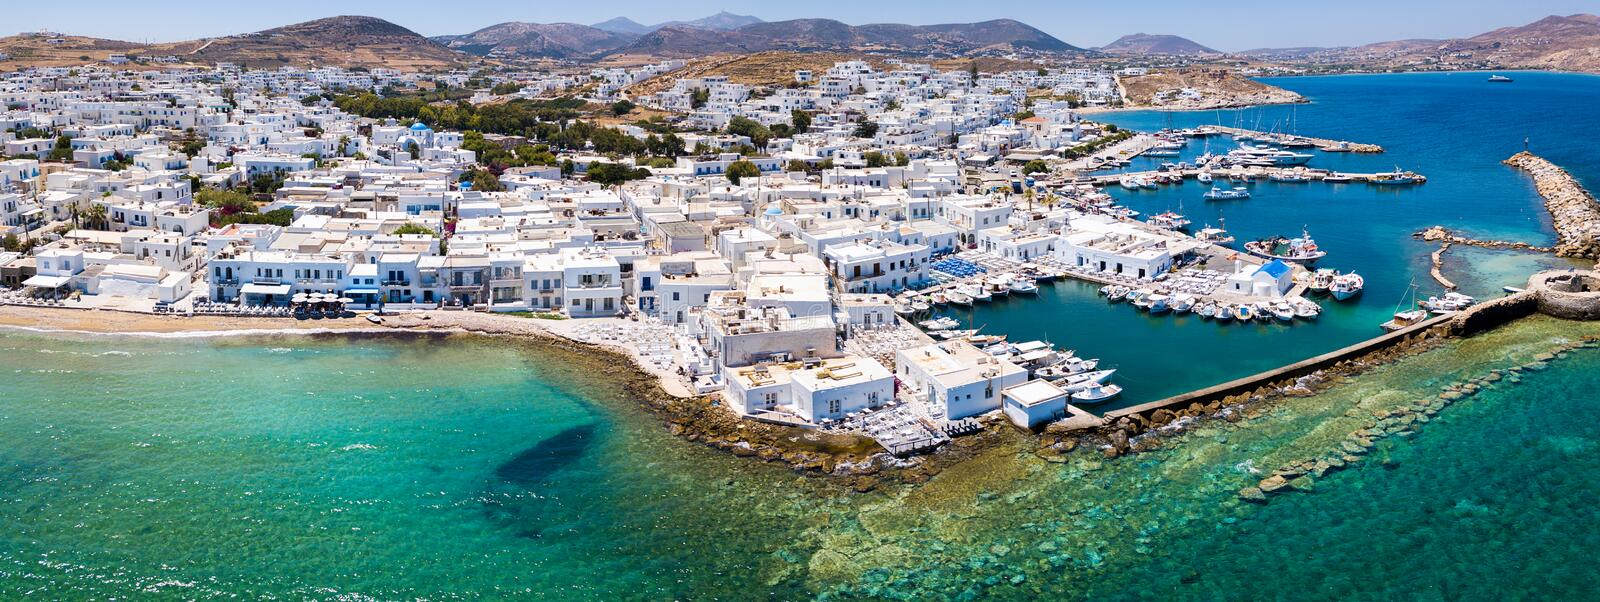 Panoramic aerial view of the village of Naousa, north Paros, Cyclades, Greece royalty free stock image